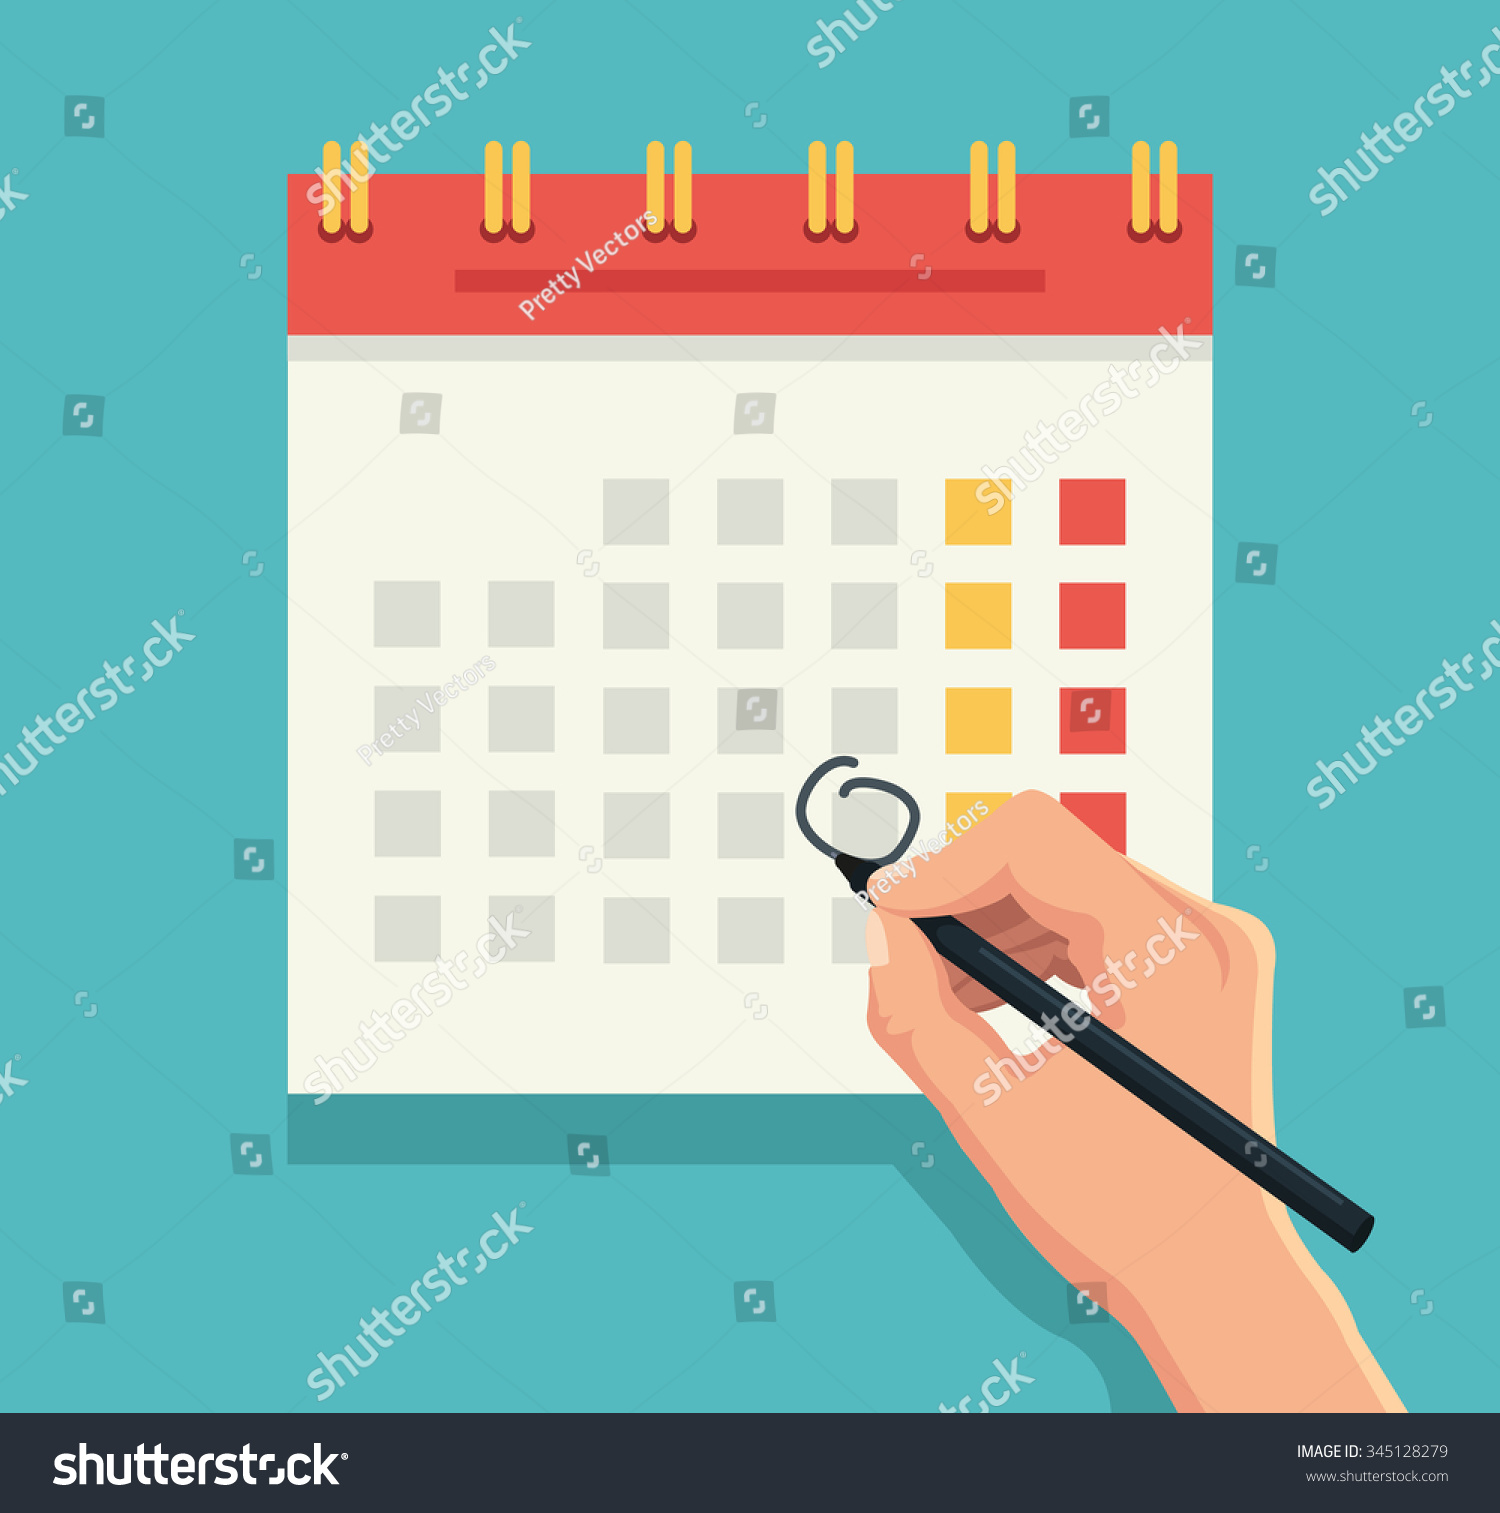 Calendar Month Illustration : Hand pen mark calendar vector flat stock